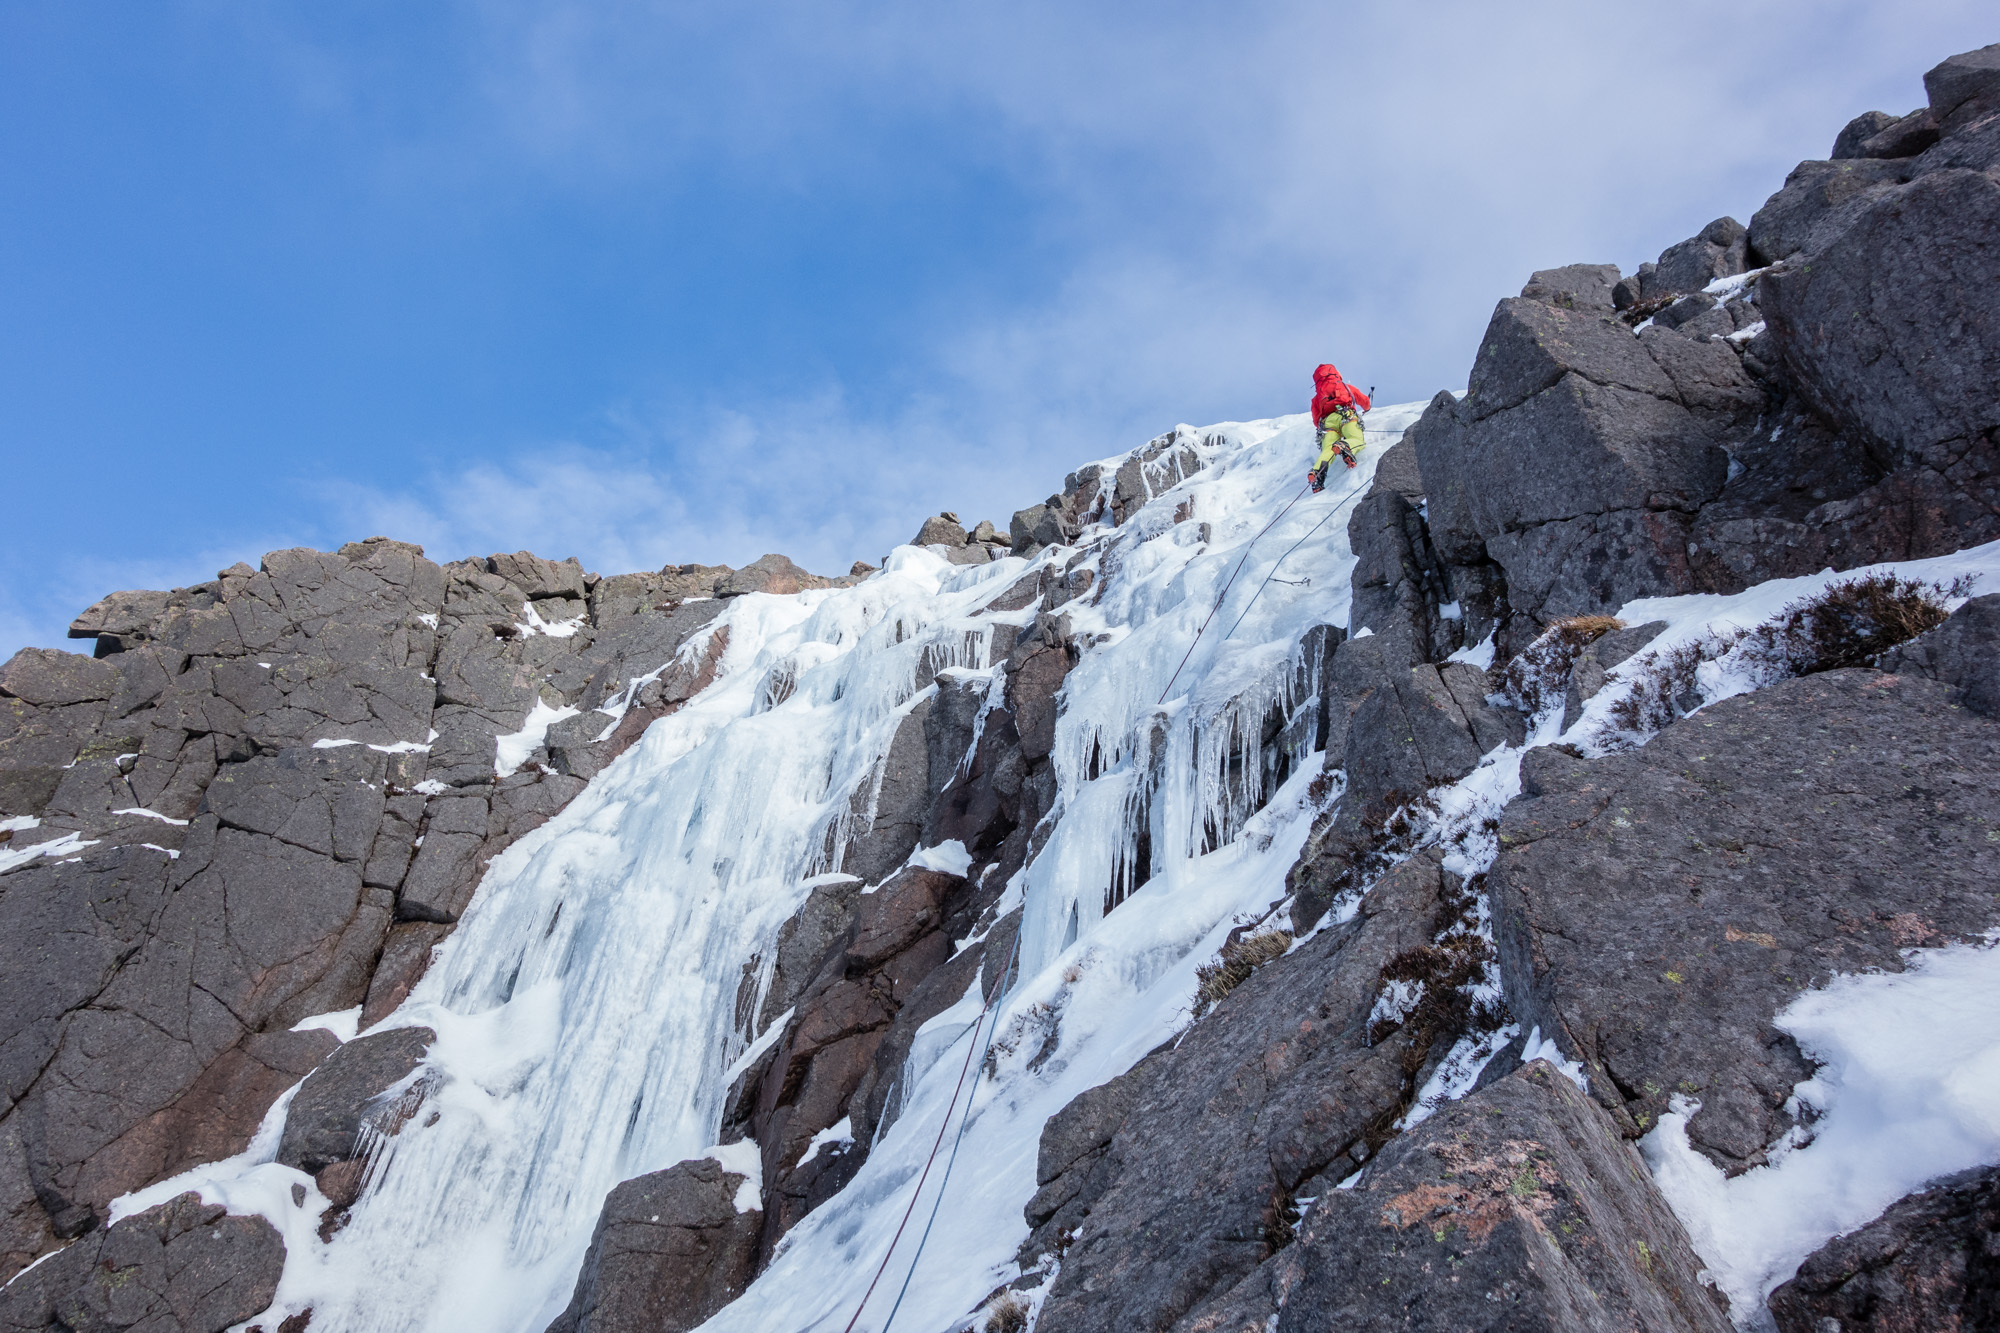 Joe cruising up plastic ice on the right hand upper icefall of K9. The left hand side had suffered somewhat in the sun!